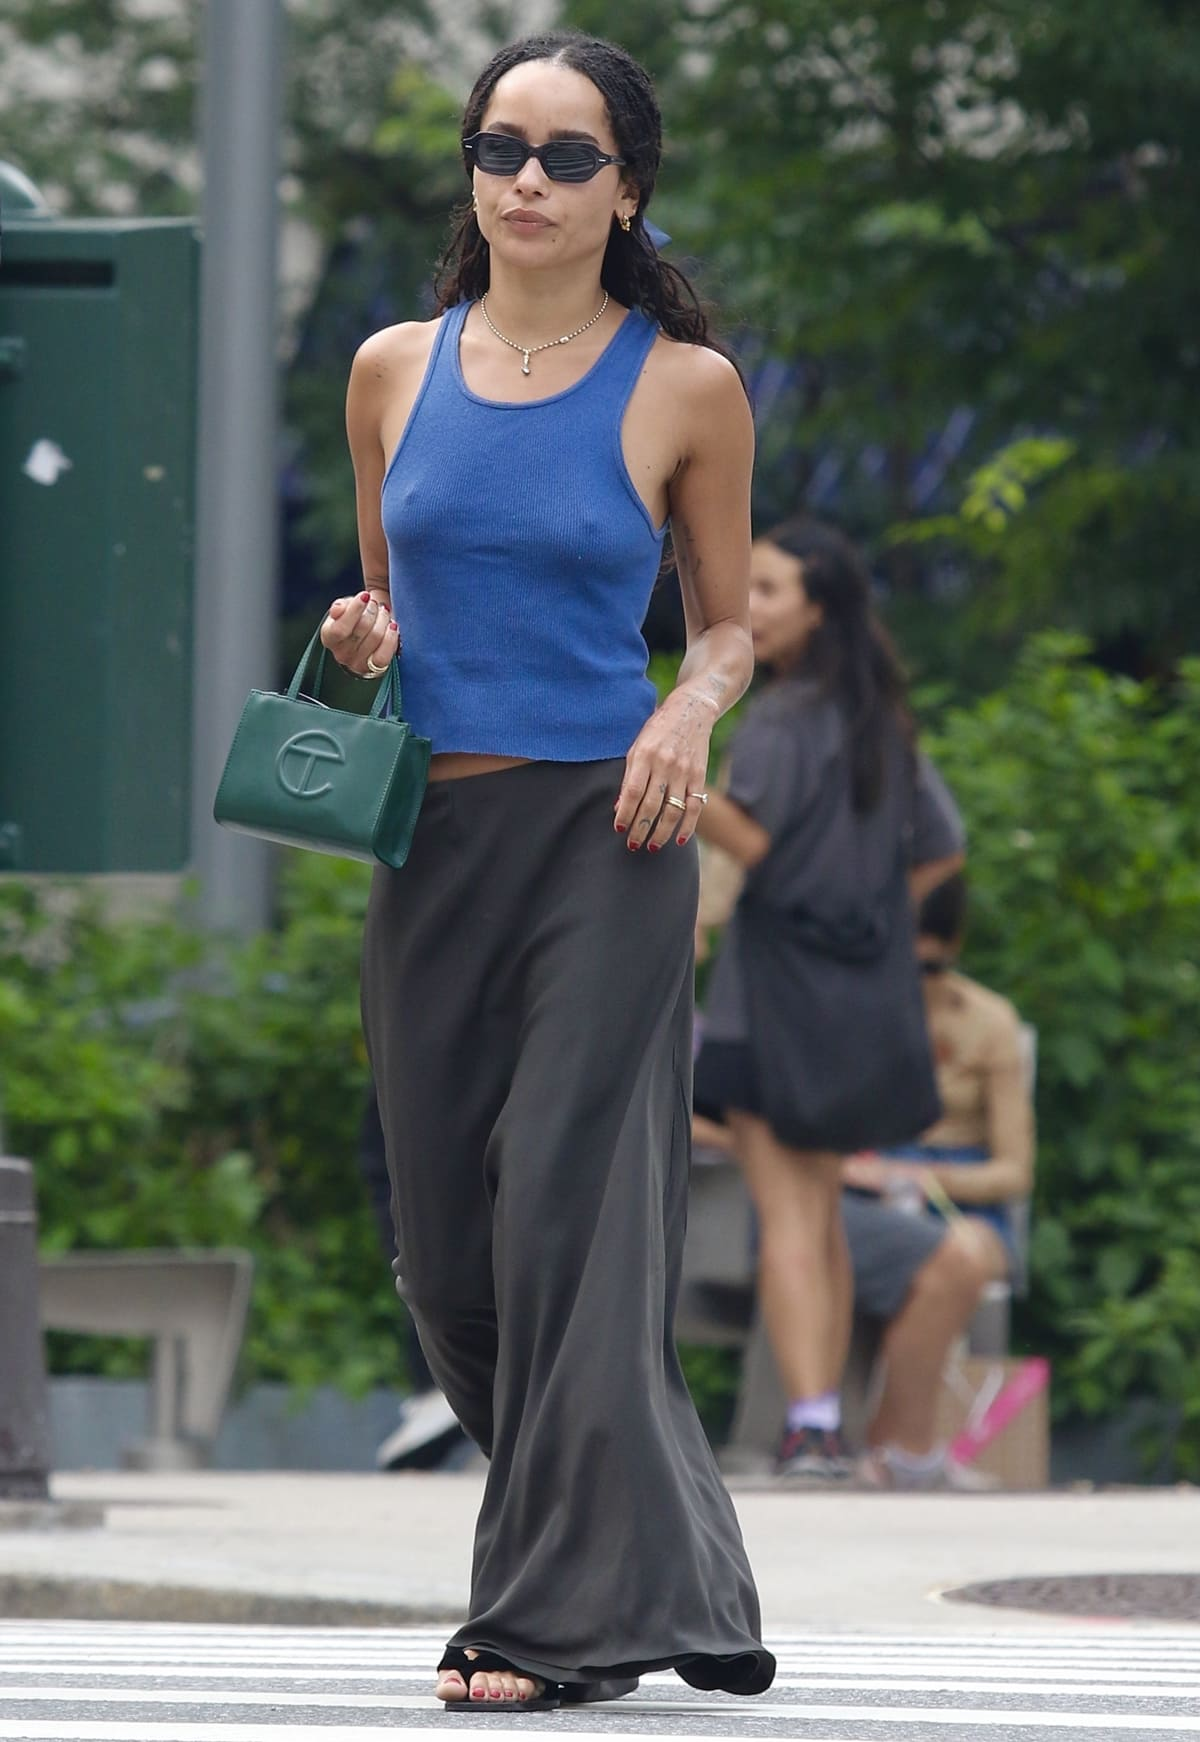 Zoe Kravitz shows how to wear a maxi skirt with a blue tank top, square toe sandals, and a green Telfar bag